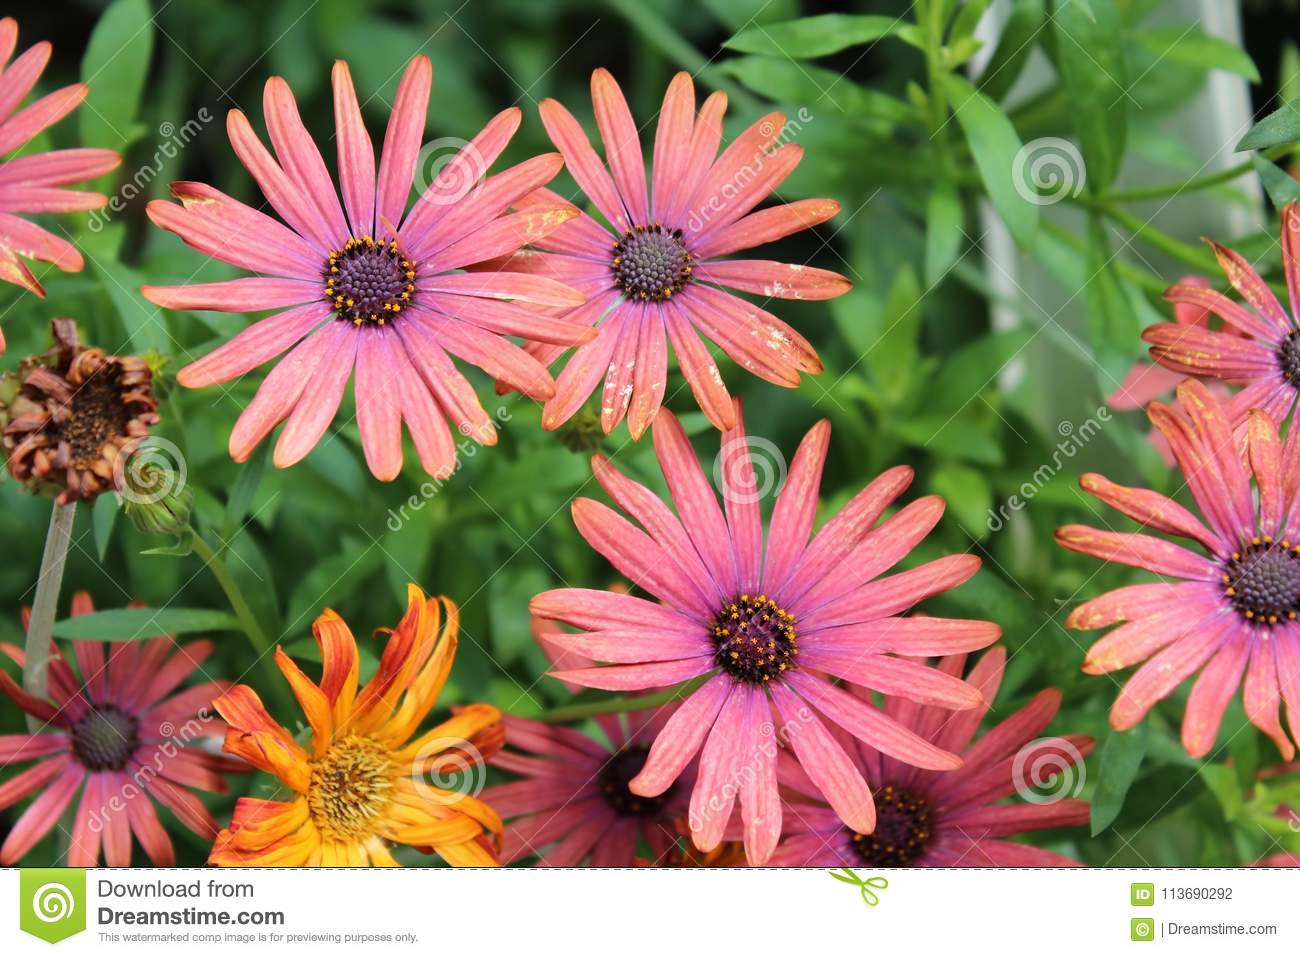 COLORFUL BUNCH OF GERBER DAISIES